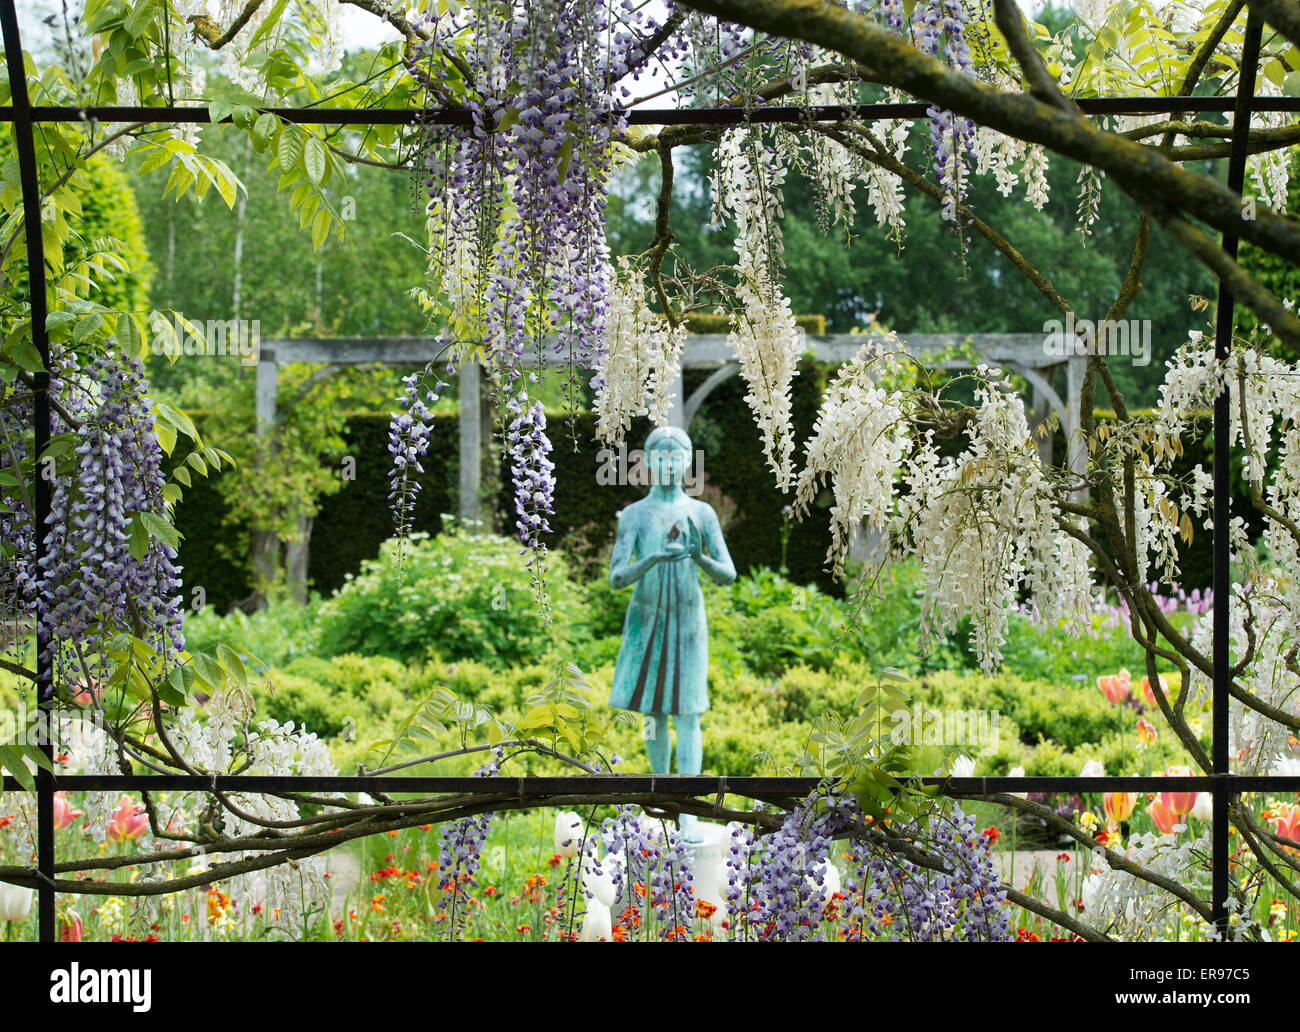 Girl statue called the 'lamp of wisdom'. Ornamental garden statue and Wisteria archway in the formal garden - Stock Image